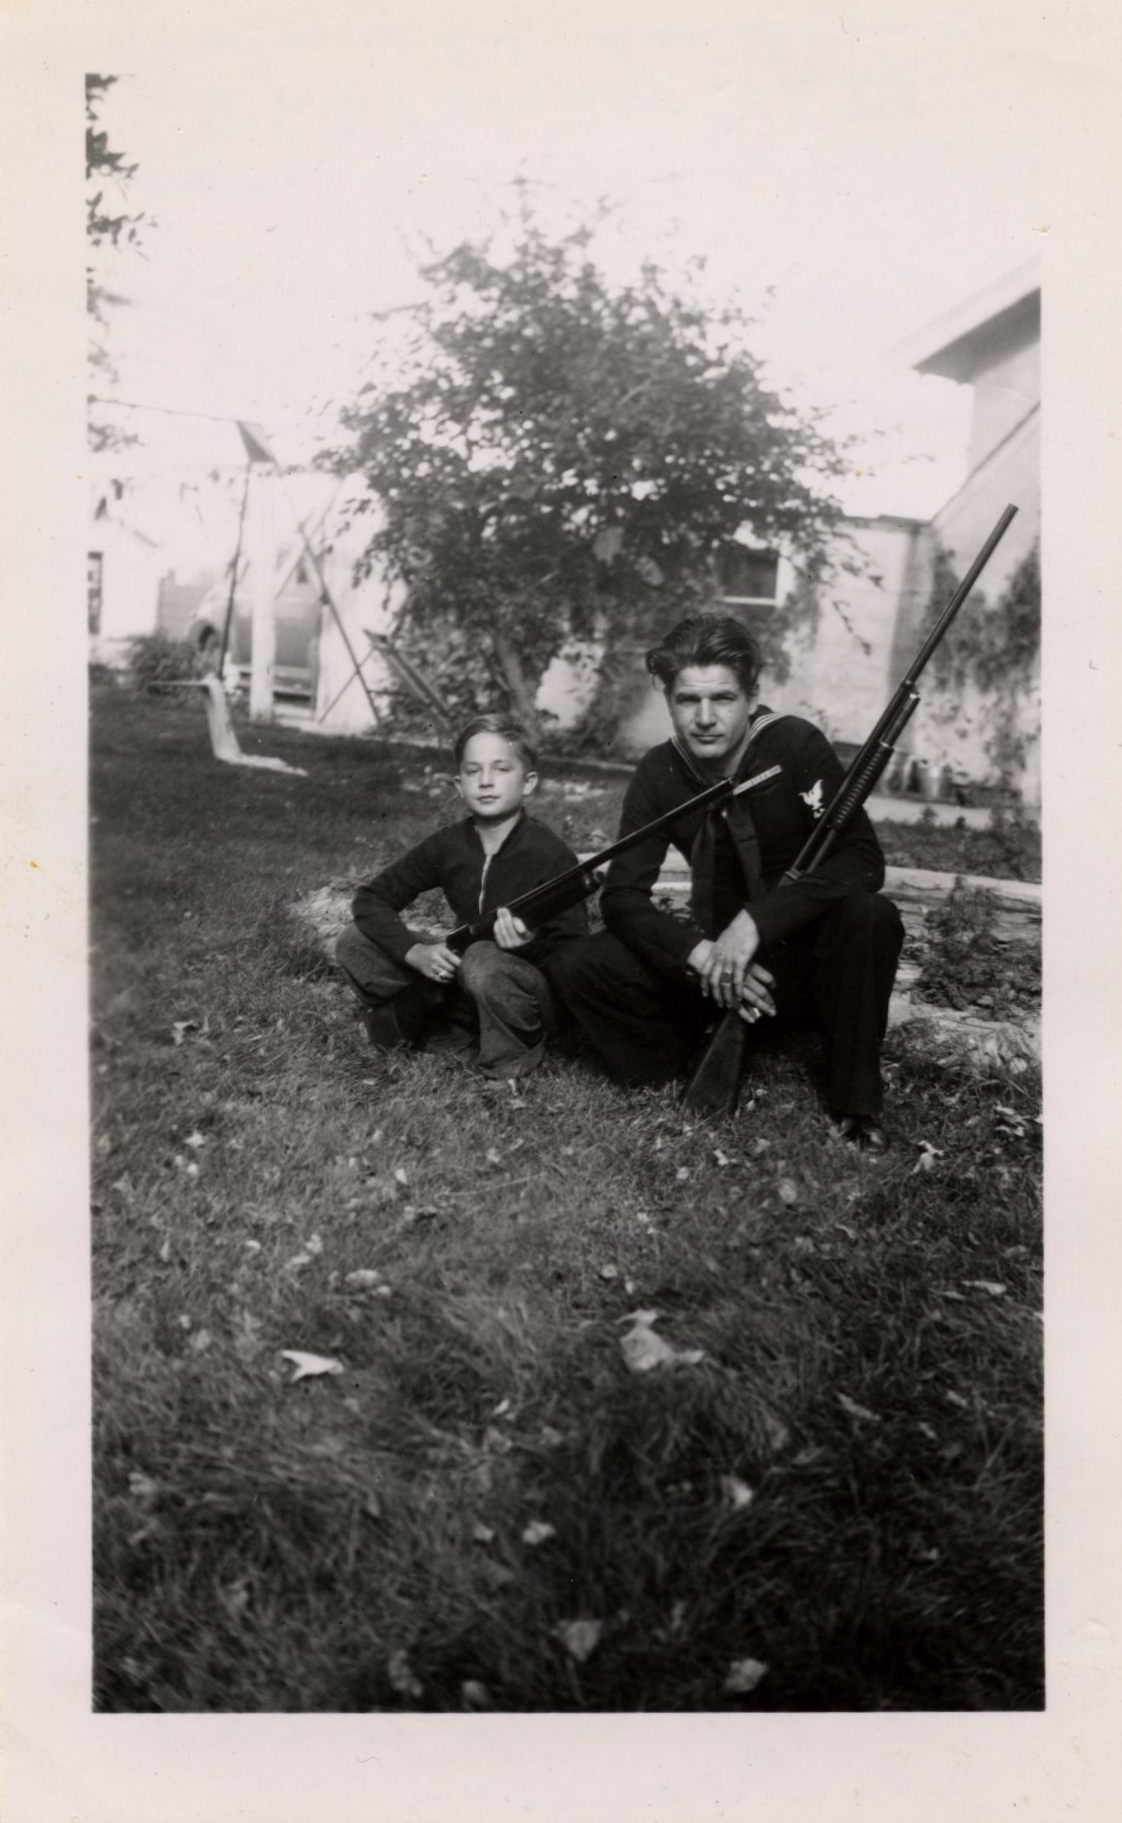 Leon Inar Morrison (26) and Ivan Peterson Jr. (almost 10) (front) (circa 1943)